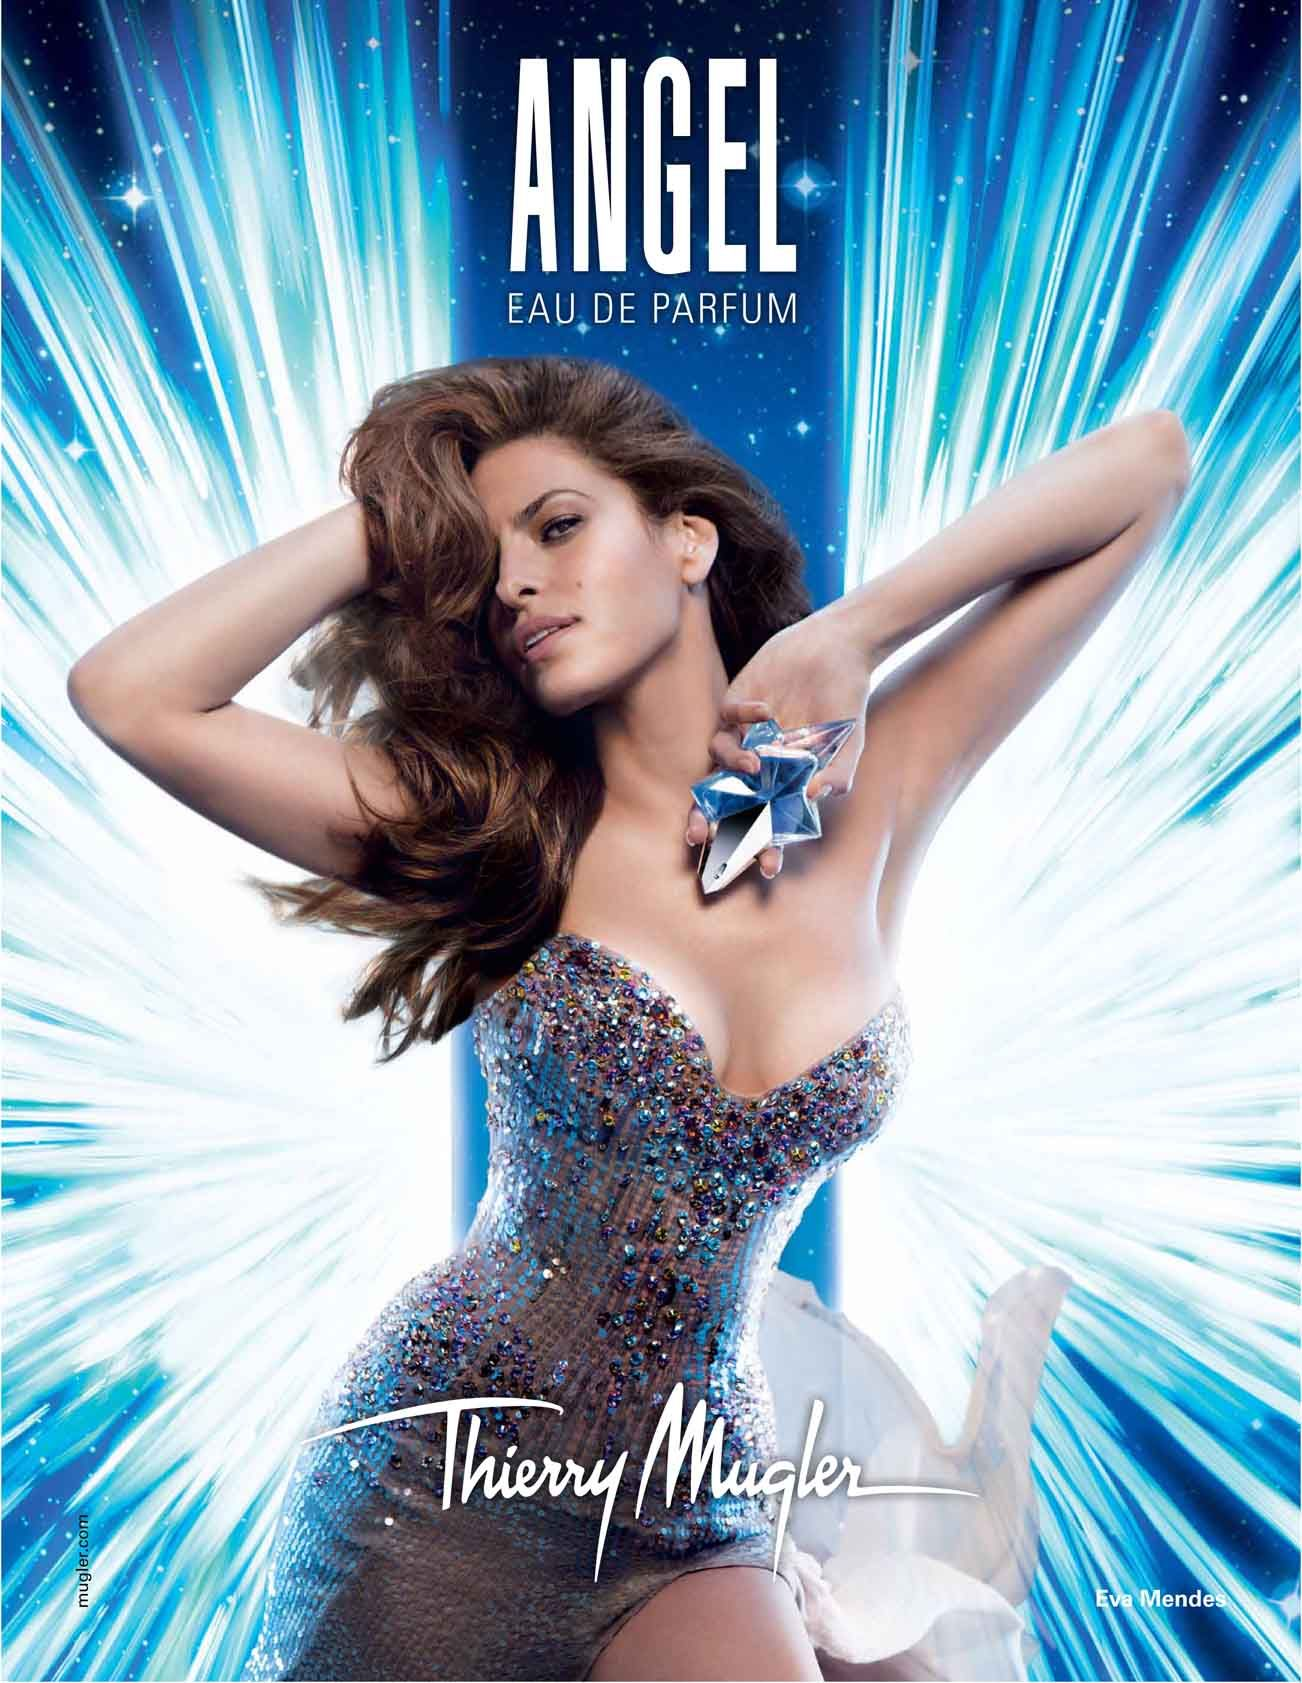 The Secrets Behind Thierry Muglers Iconic Angel Ad Campaigns